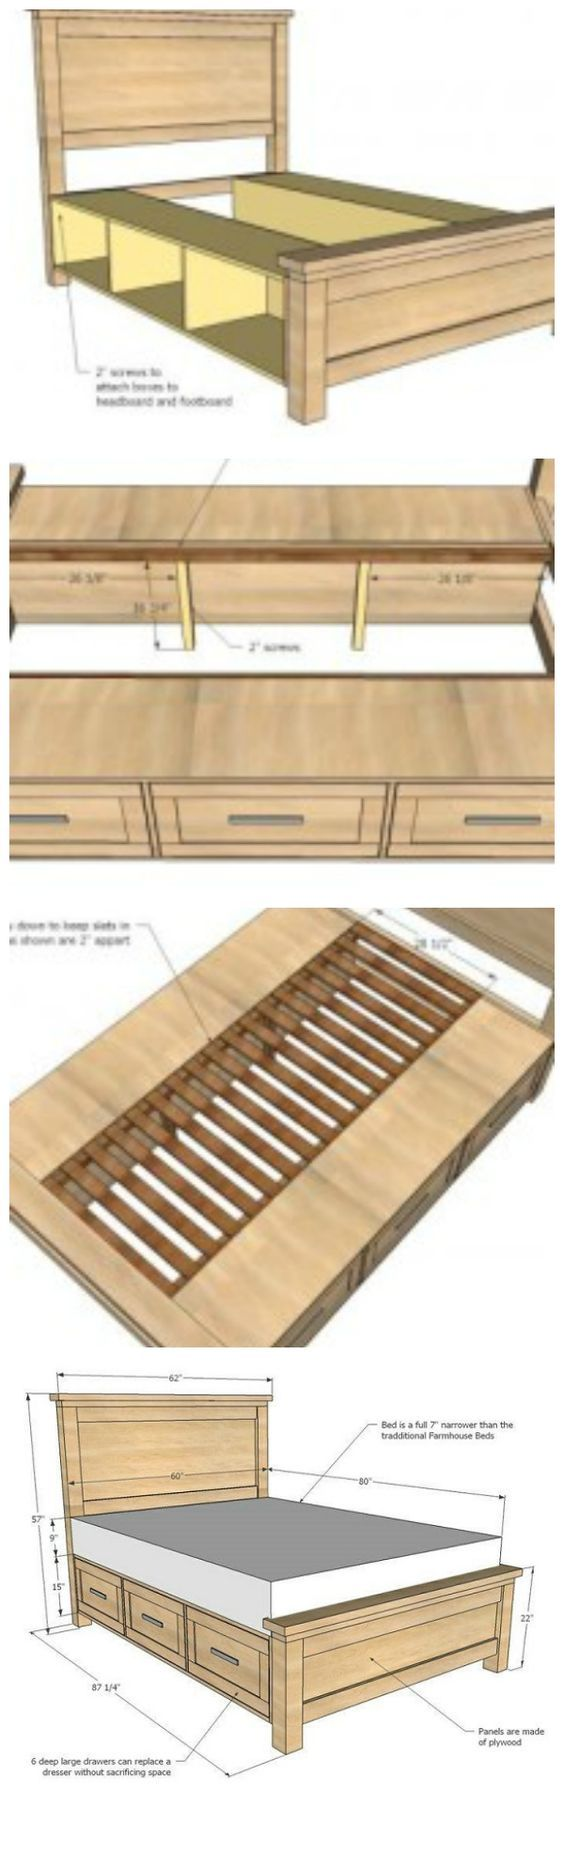 DIY Farmhouse Storage Bed With Storage Drawers Diy bed